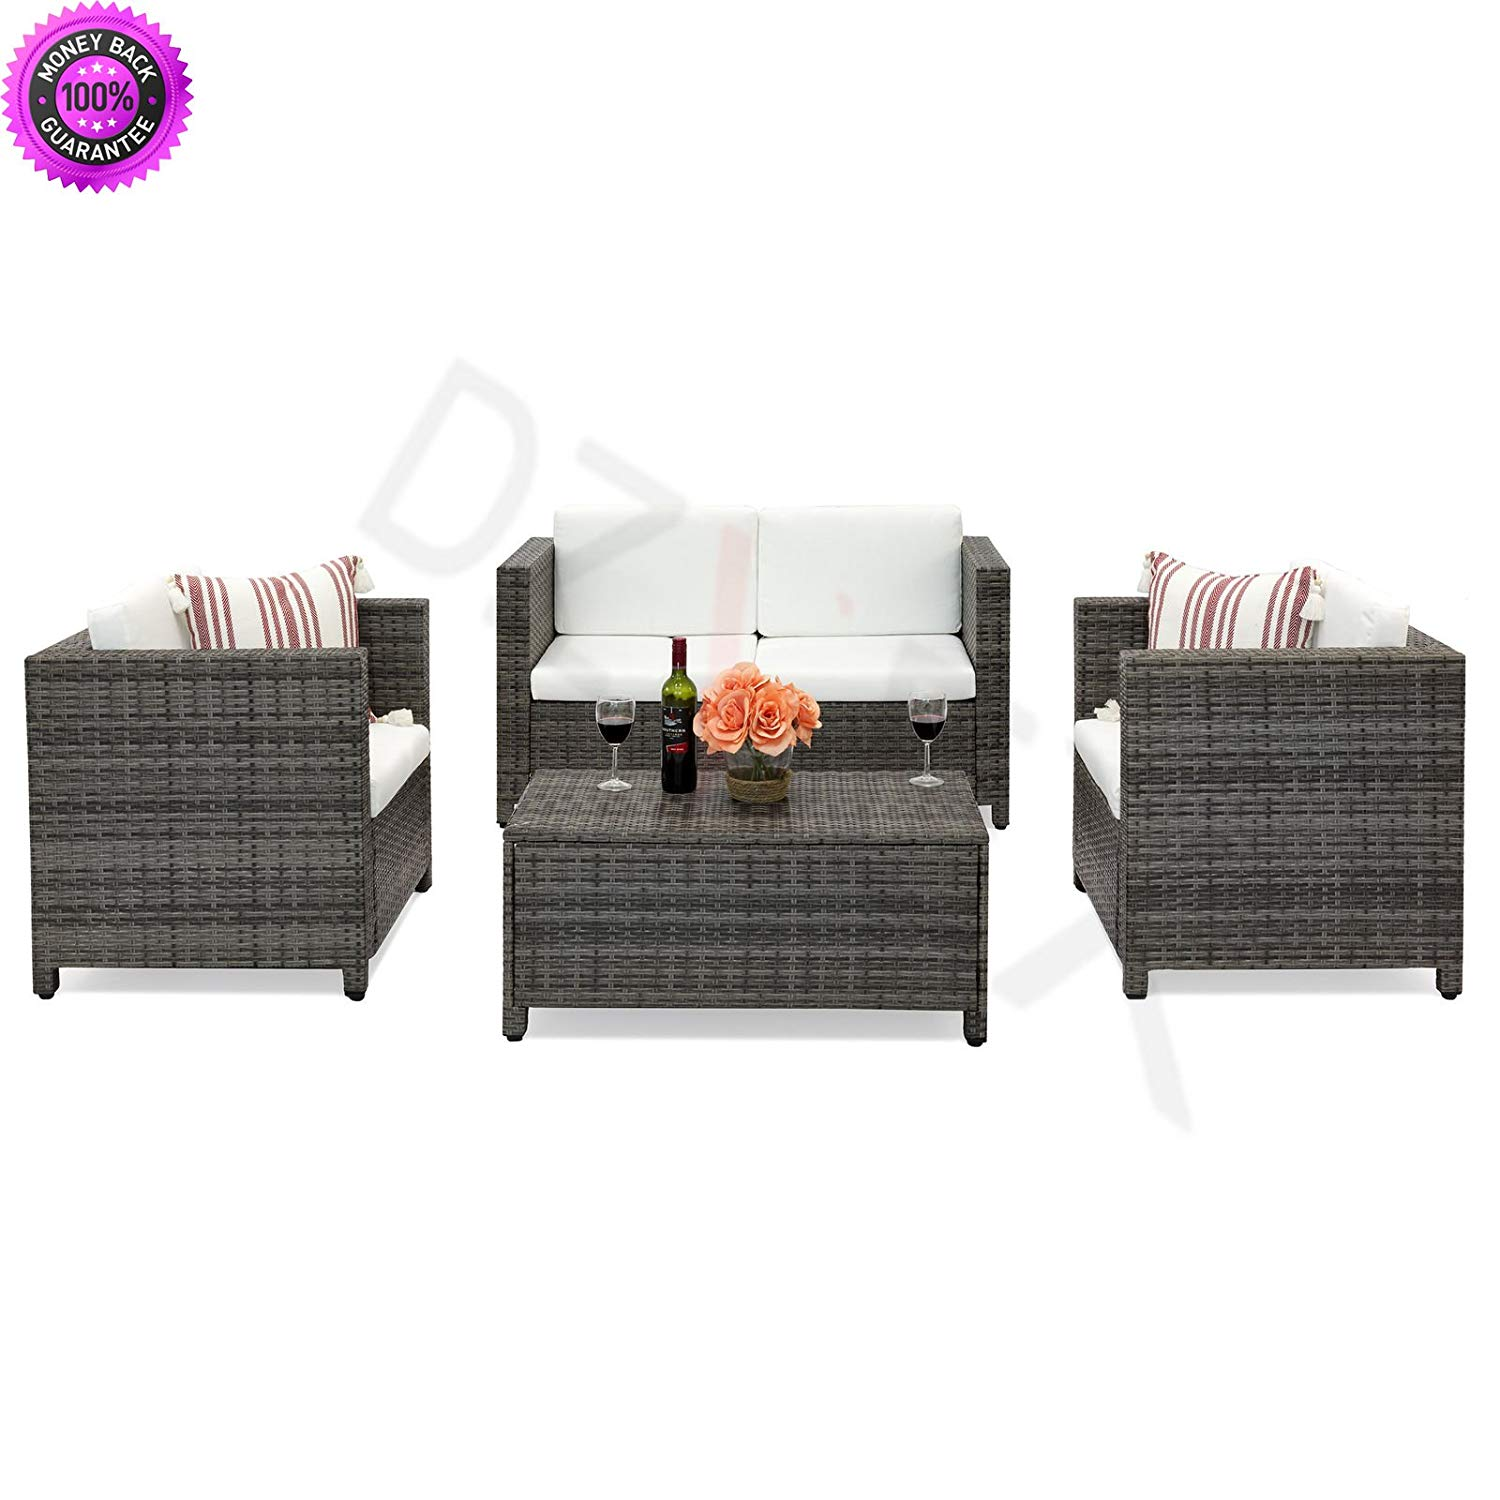 Dzvex 4 Piece Wicker Sofa Set W Cushions Gray And Patio Furniture